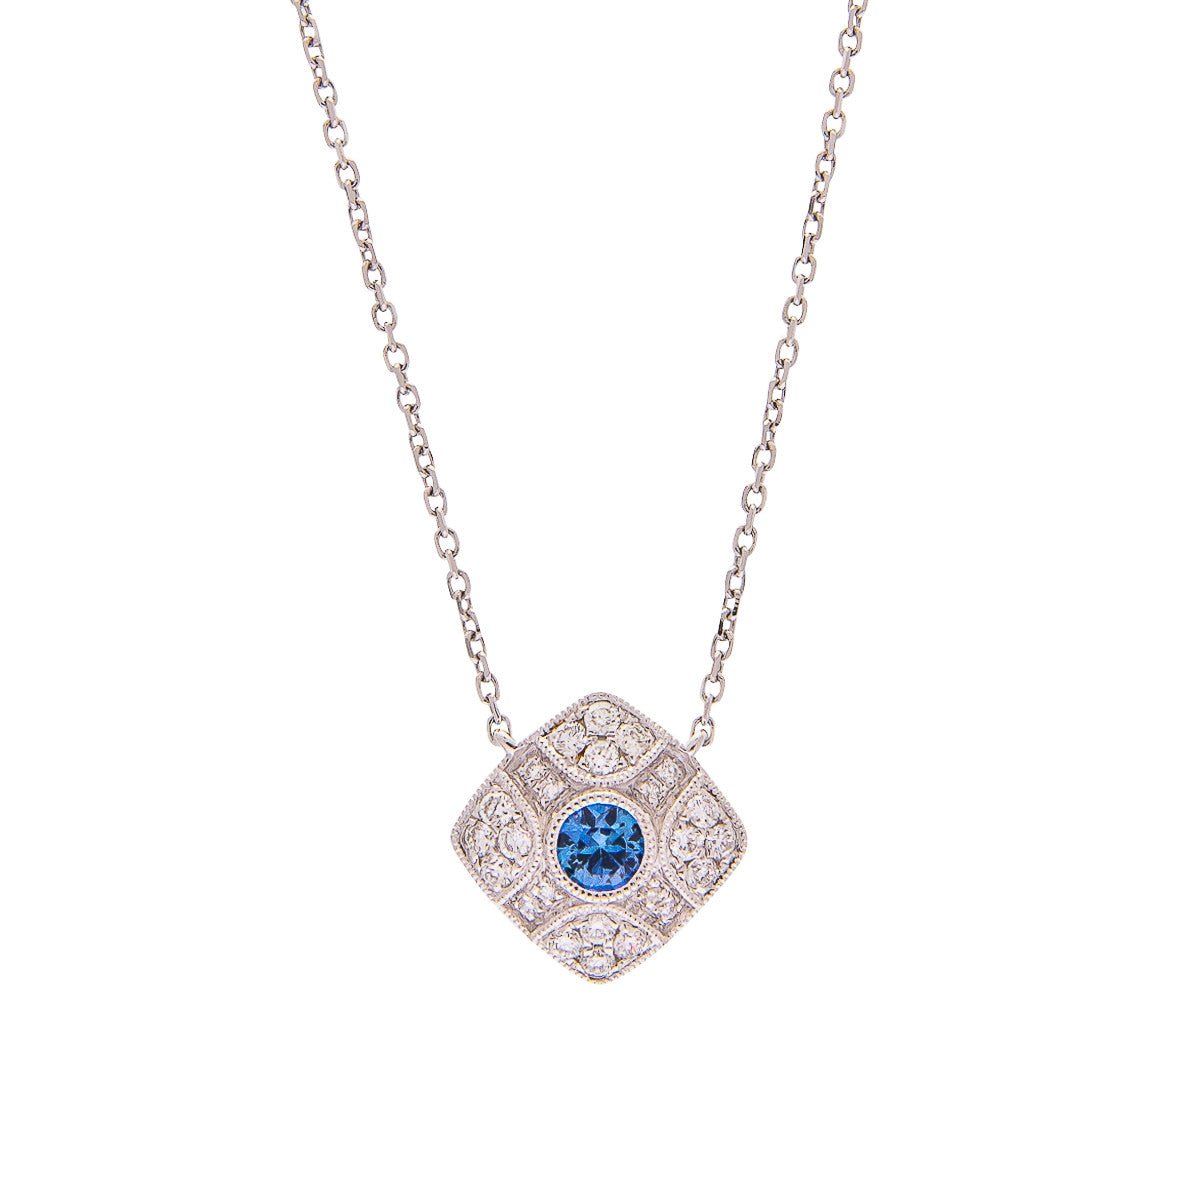 Sabel Collection 18K White Gold Round Sapphire and Diamond Vintage Style Pendant